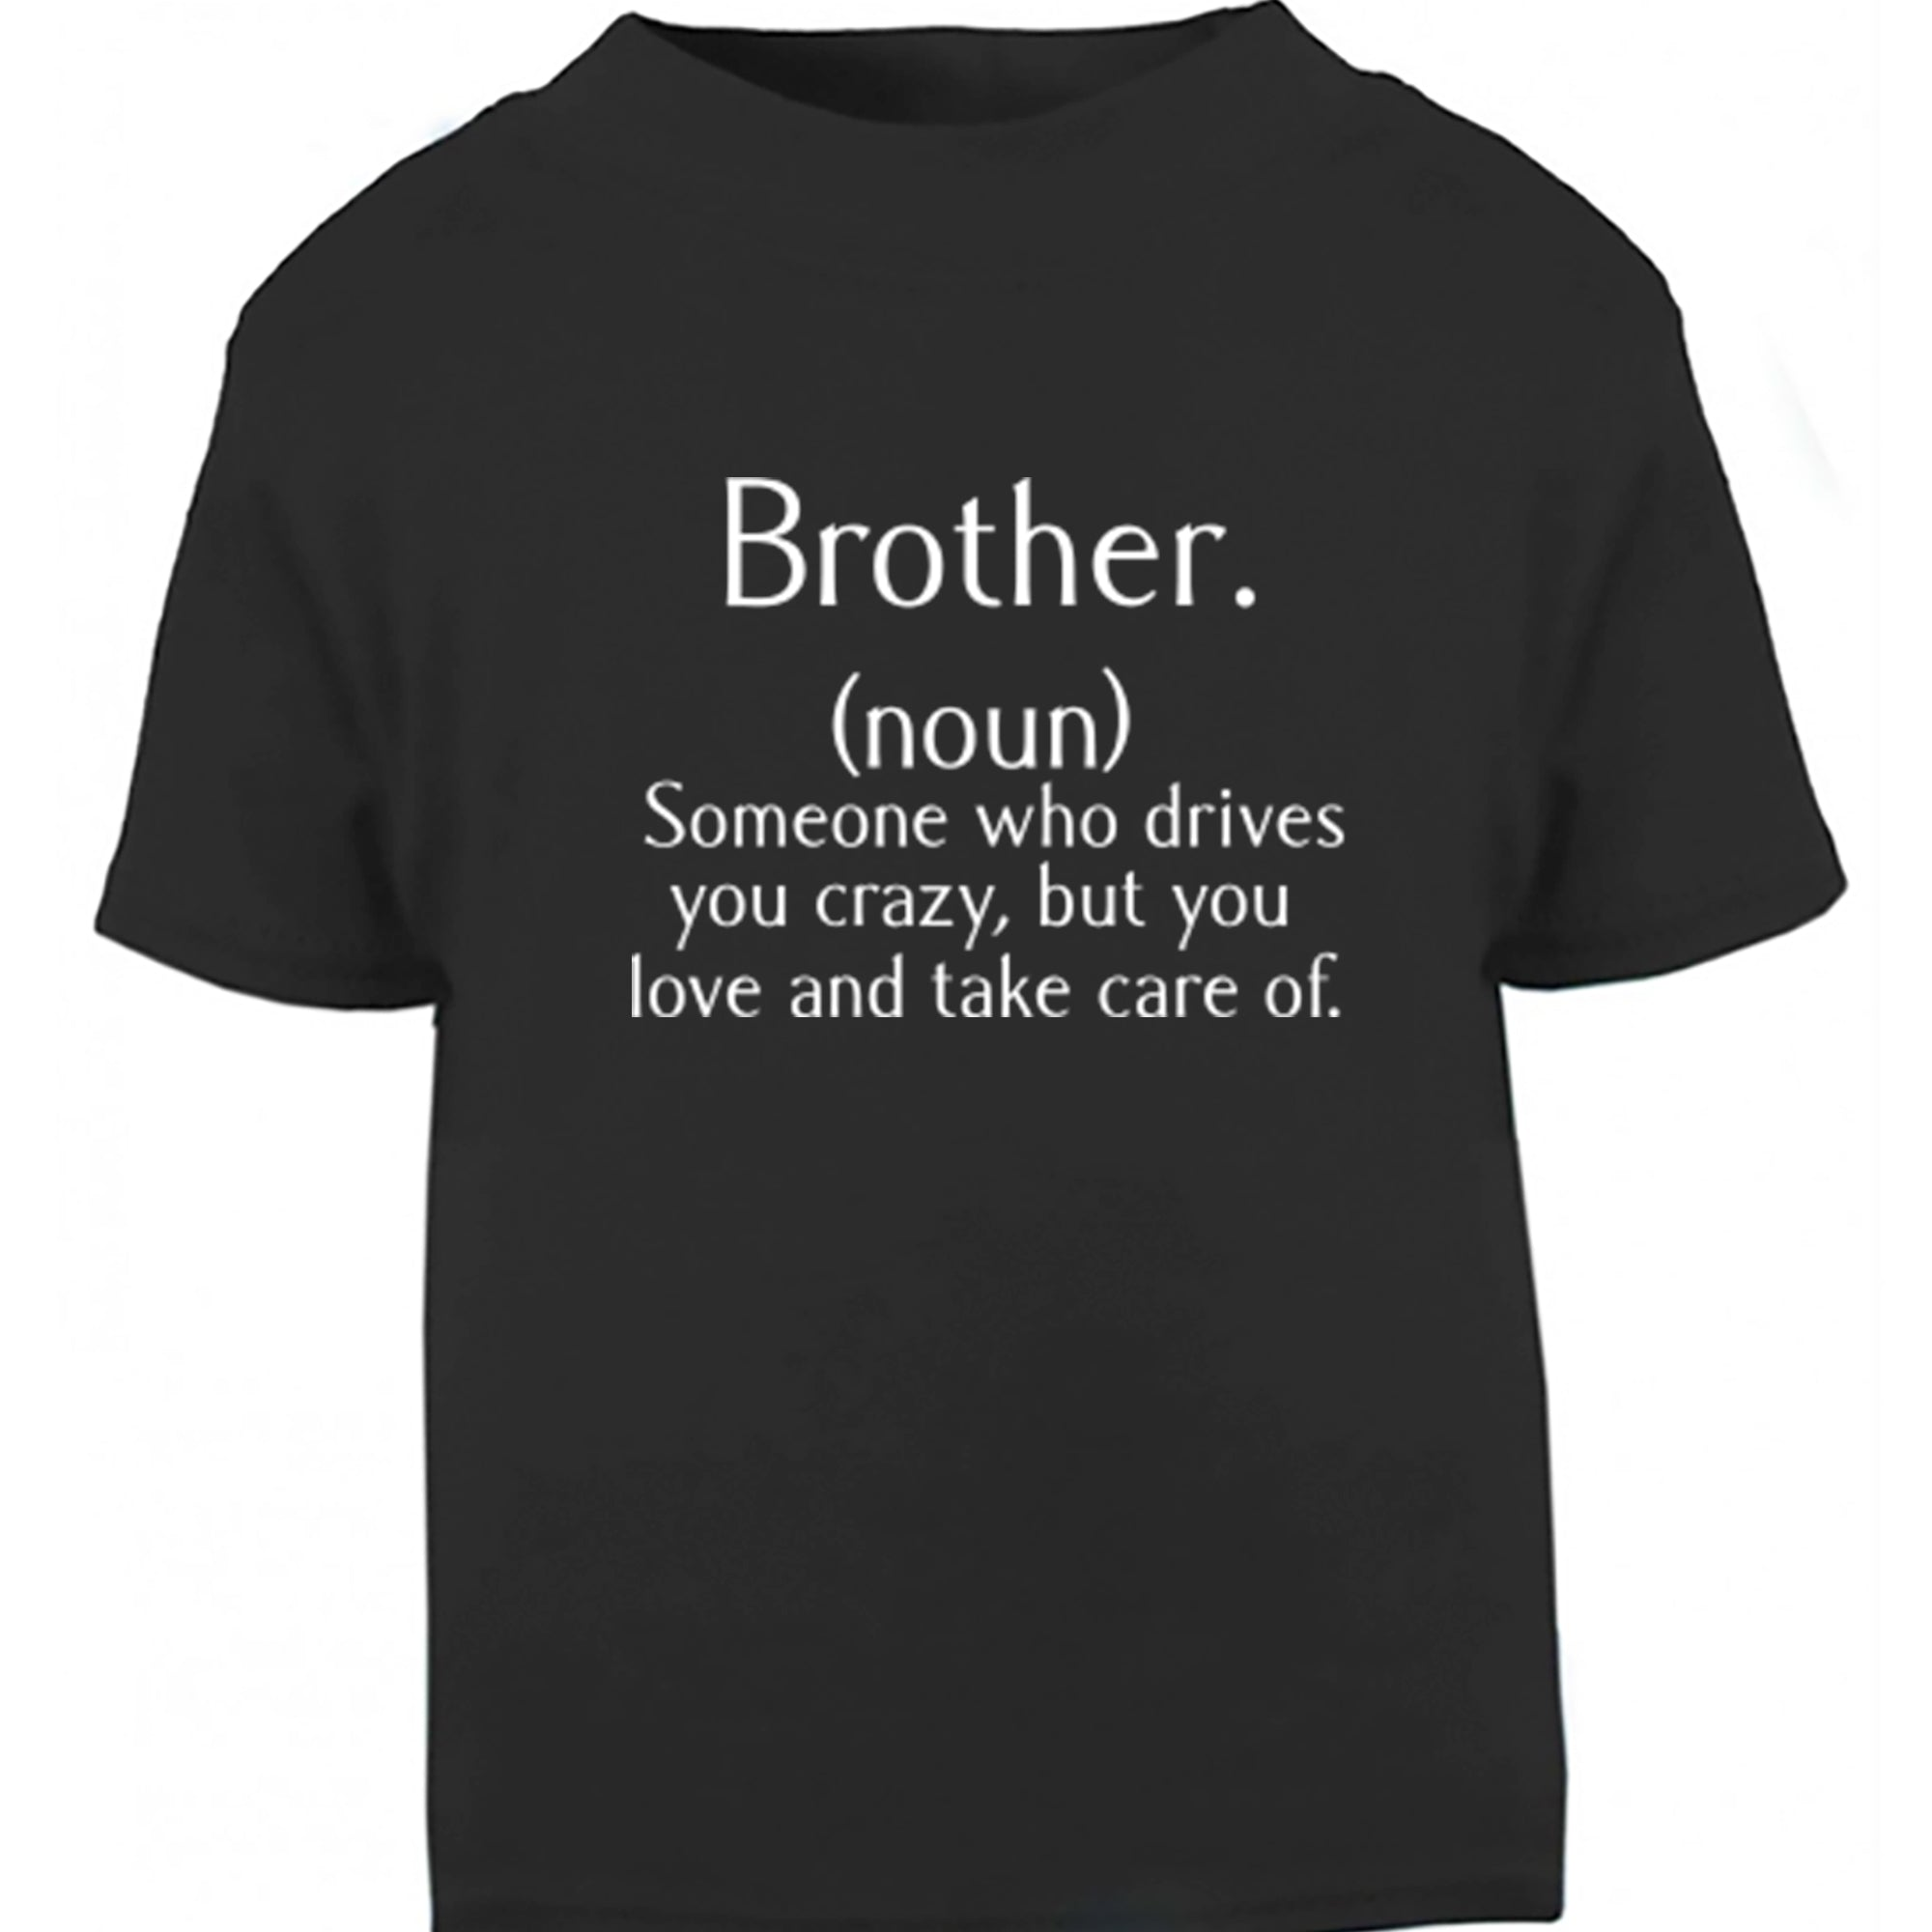 Brother Definition Childrens Ages 3/4-12/14 Unisex Fit T-Shirt S0313 - Illustrated Identity Ltd.